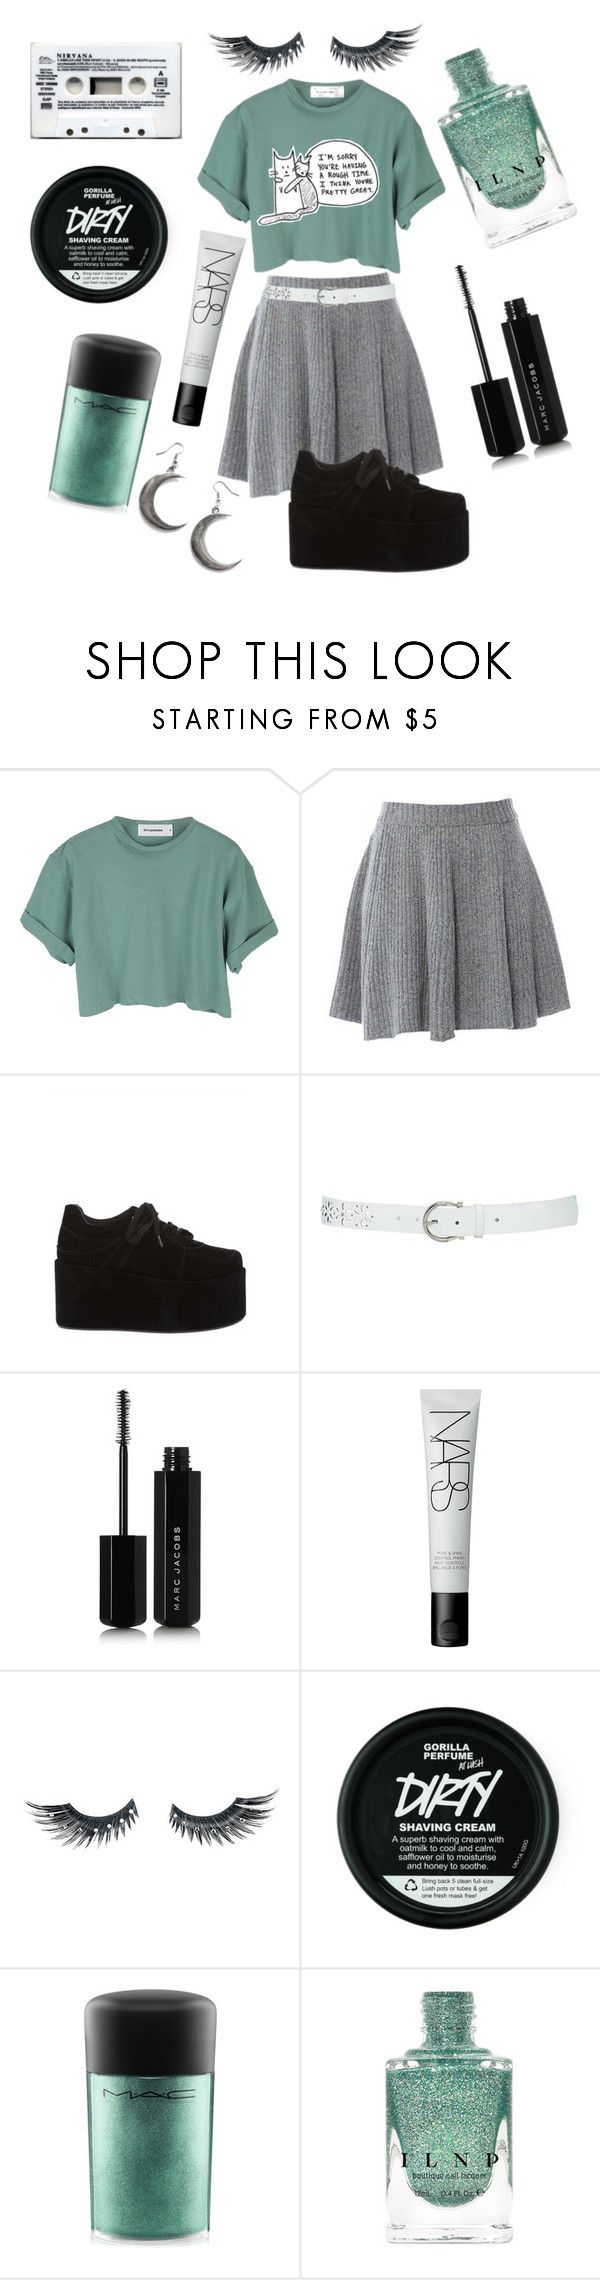 """Song to say goodbye"" by violenceinsilence ❤ liked on Polyvore featuring StyleNanda, American Retro, M&Co, Marc Jacobs, NARS Cosmetics, Napoleon Perdis, Veras and MAC Cosmetics"